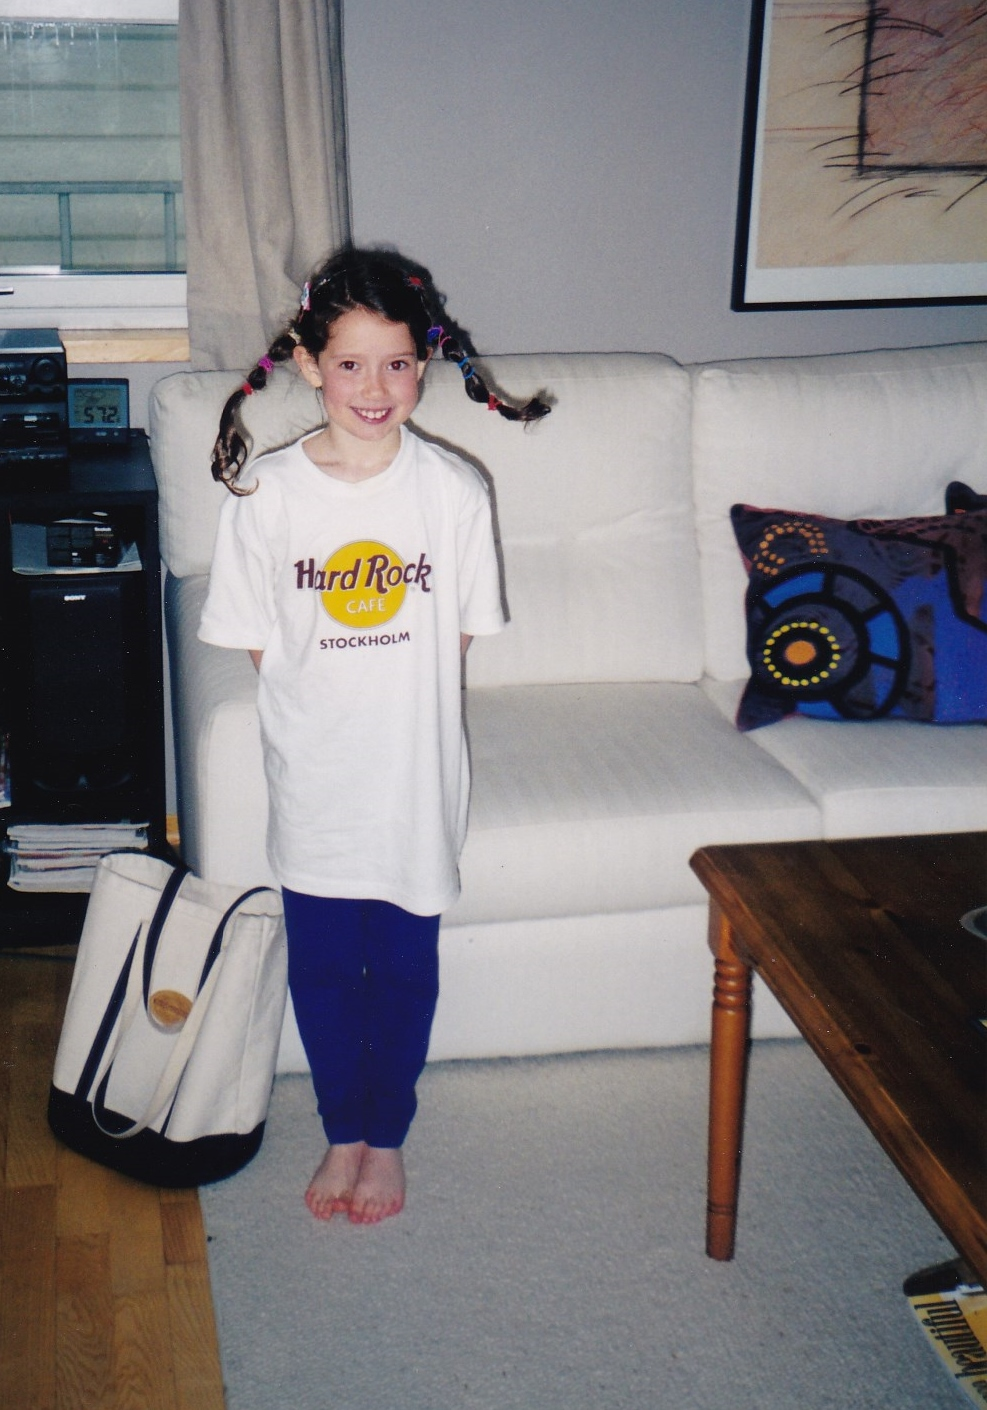 AND...here's my daughter by the tall coffee table, then around 6 years old, dressed up as Pippi Longstocking. I gotta embarrass the whole family equally, you know?